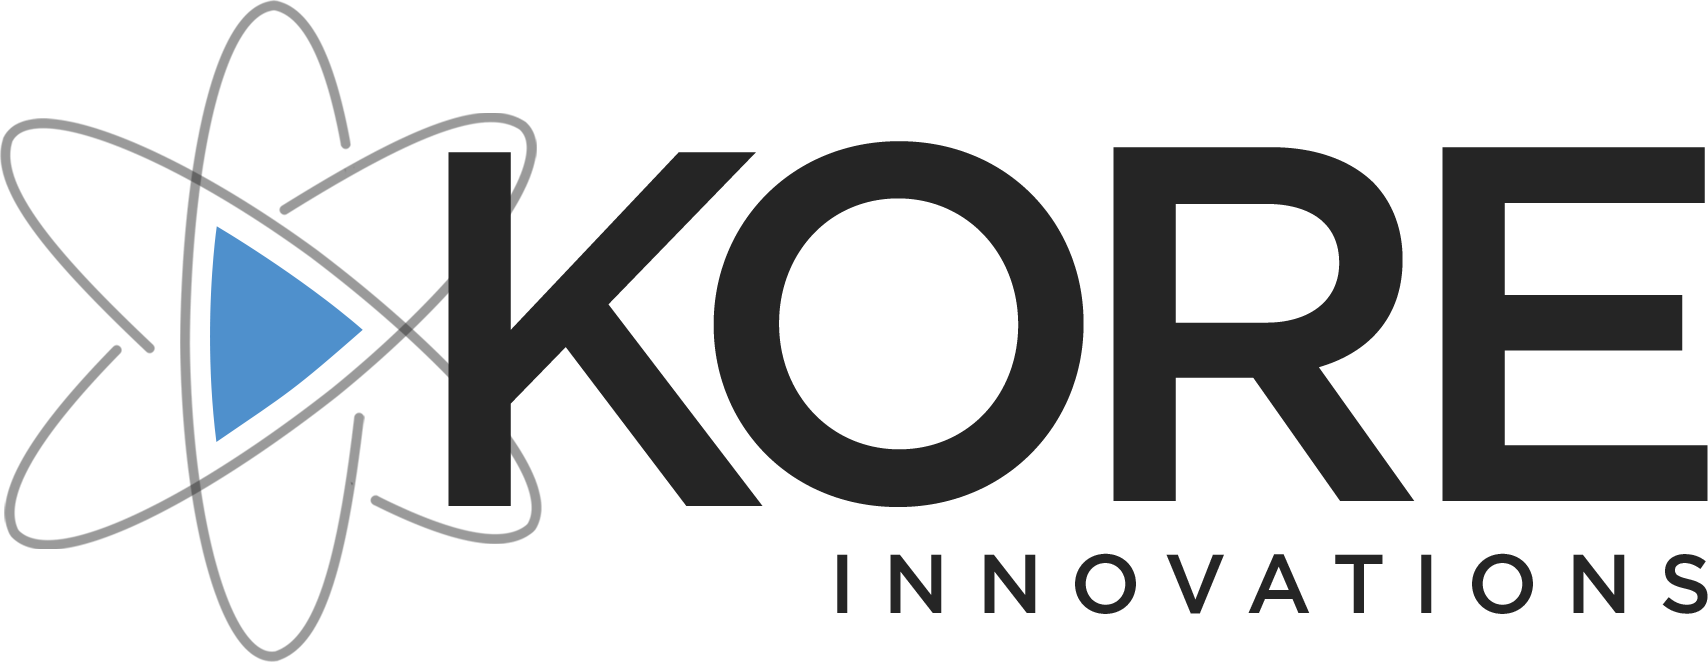 Kore Innovations